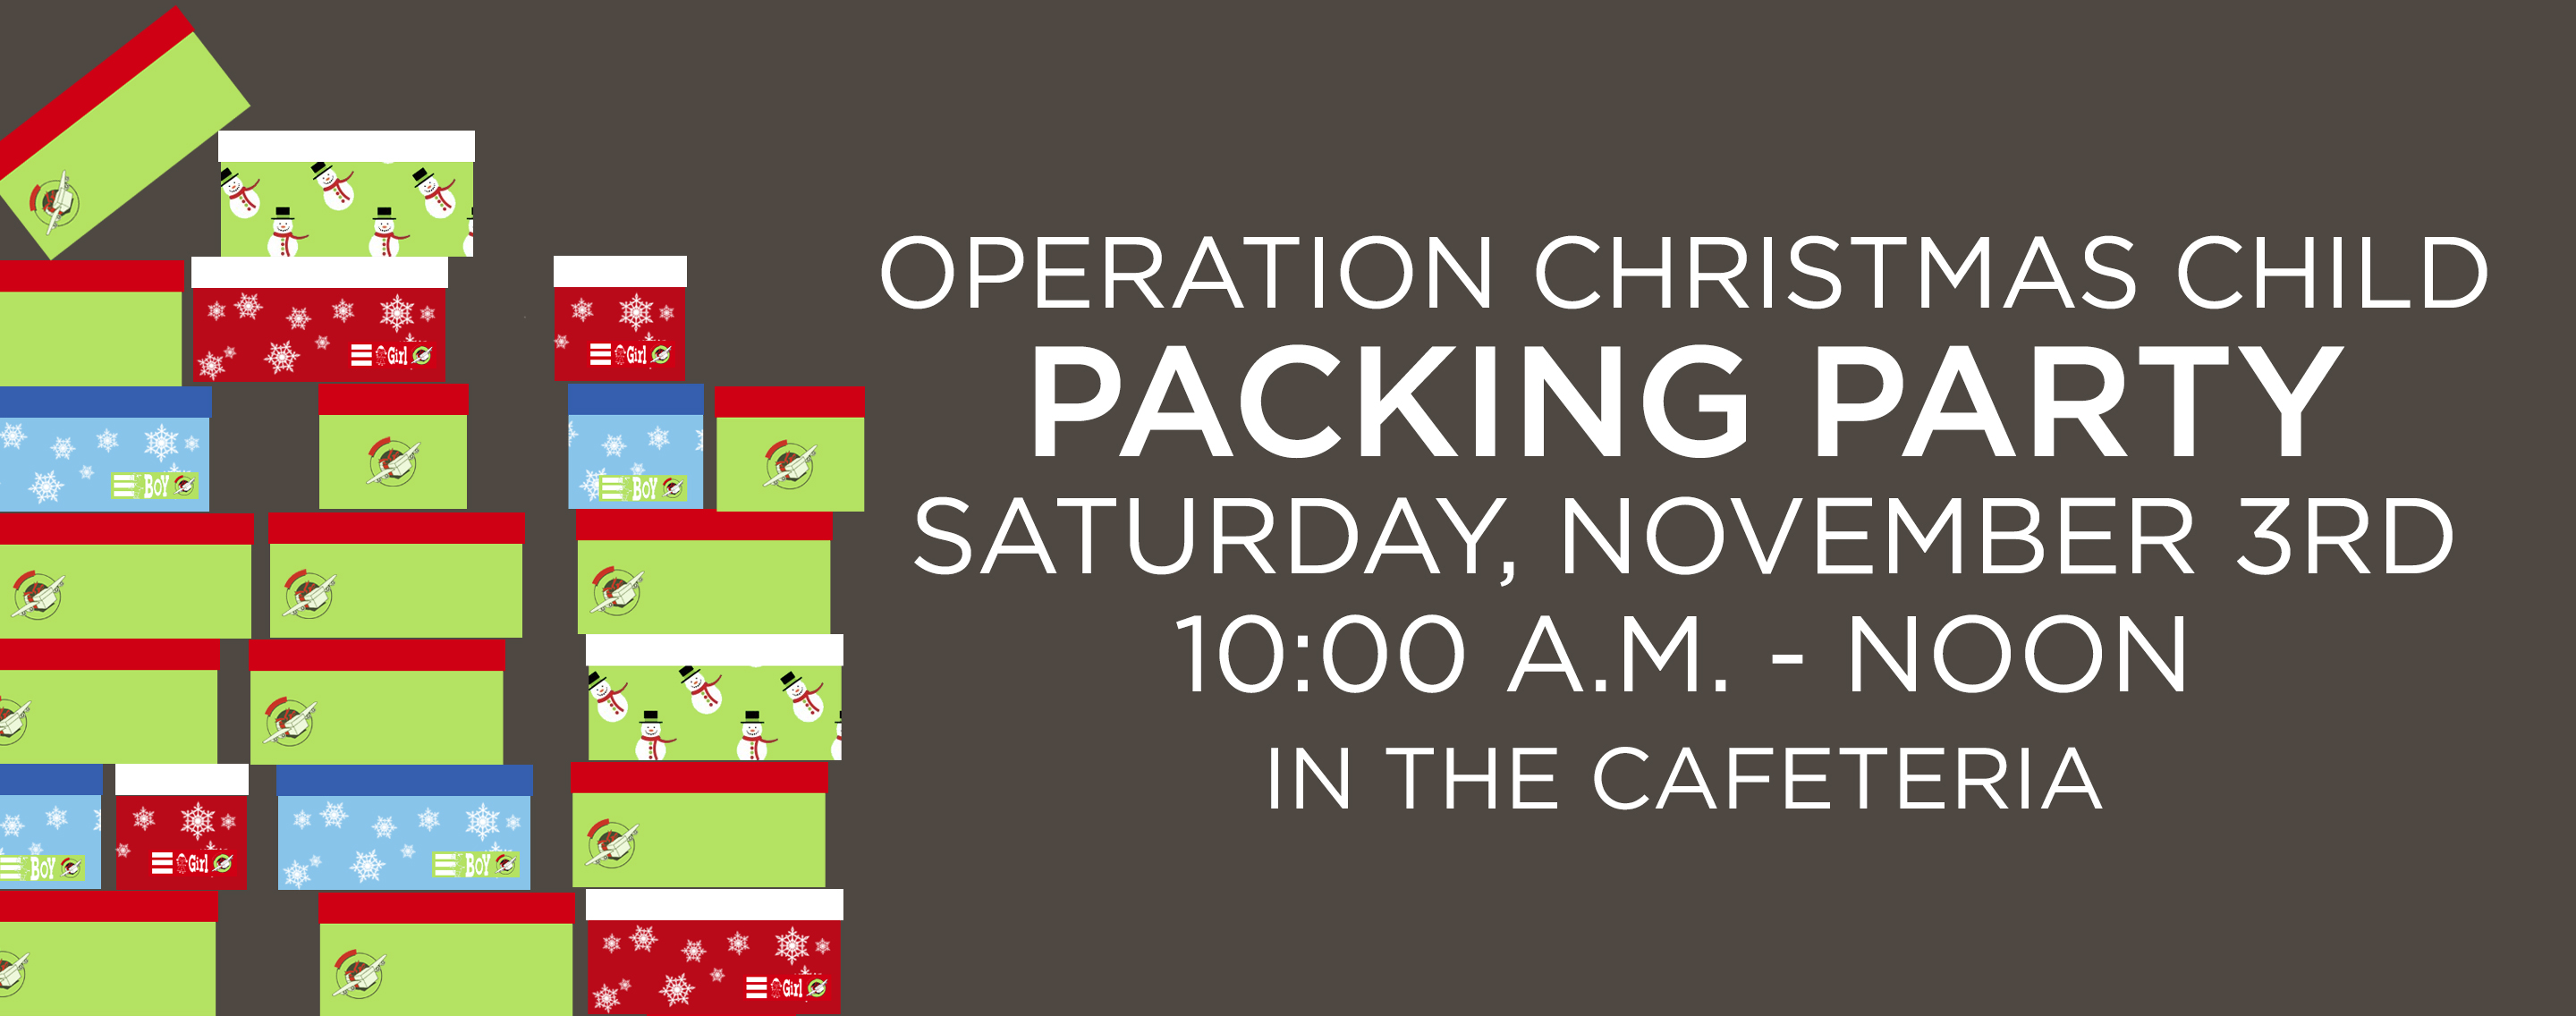 operation christmas child packing party - Operation Christmas Child Packing List